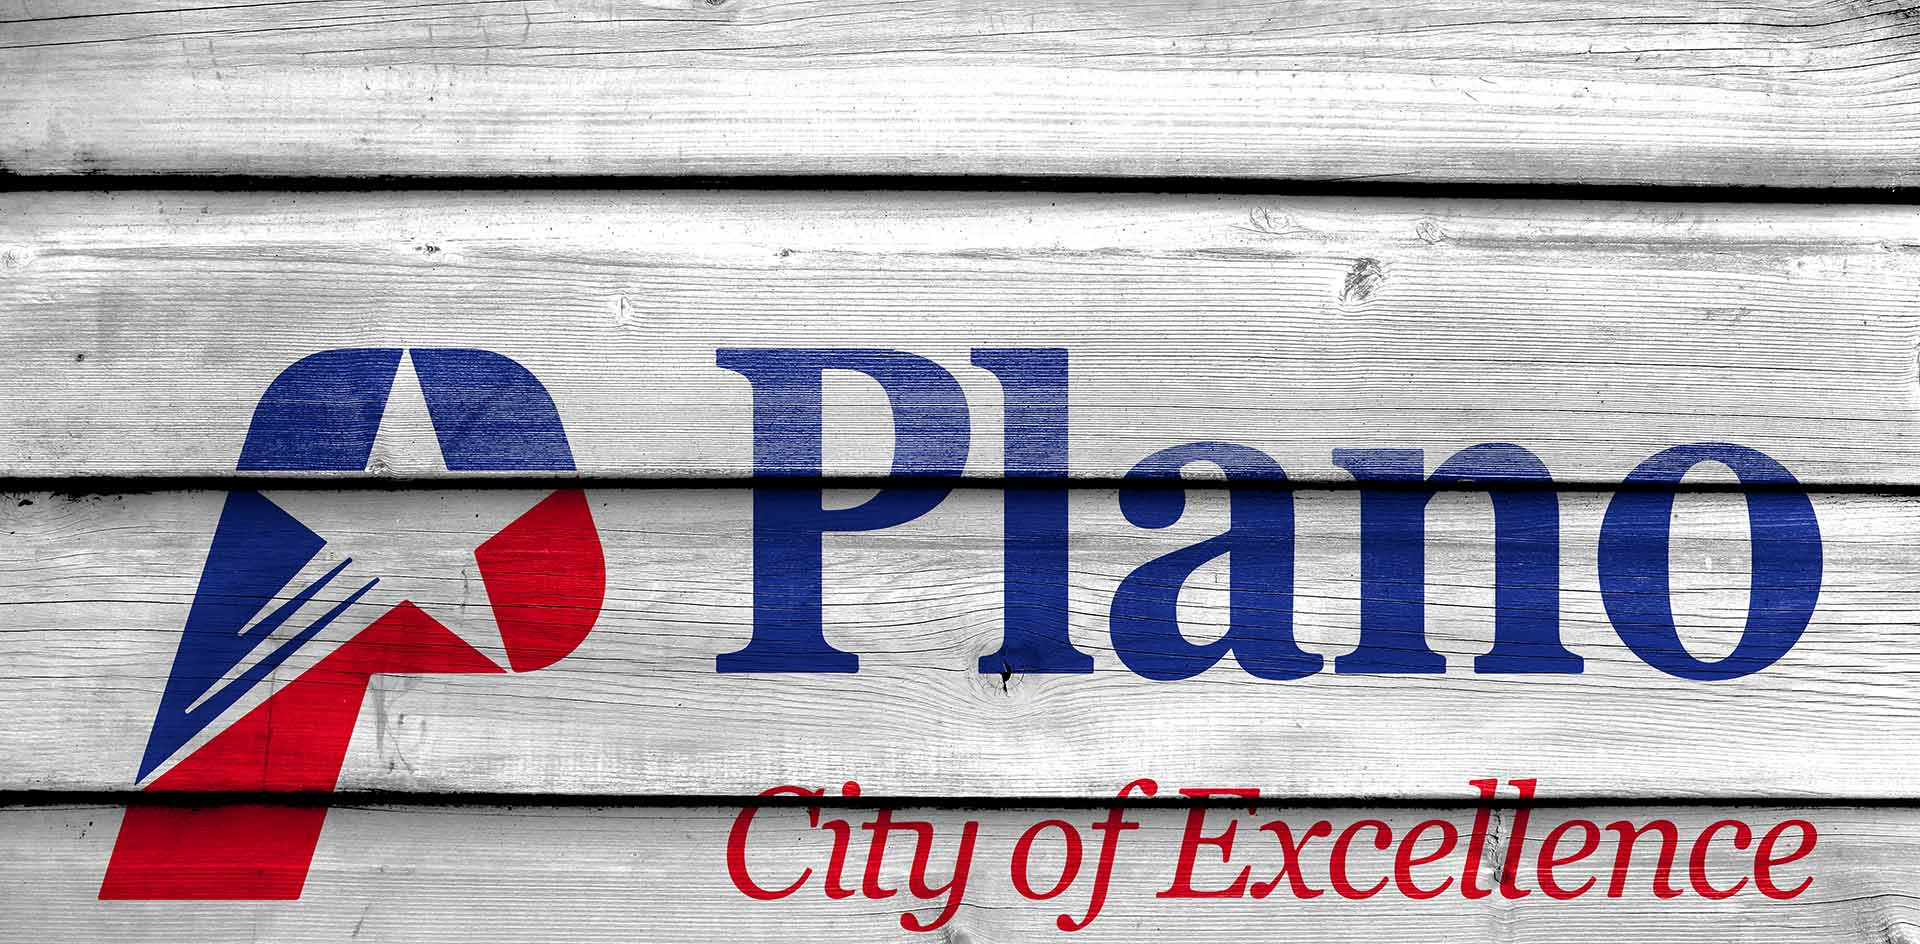 Plano TX city of excellence banner WordPress